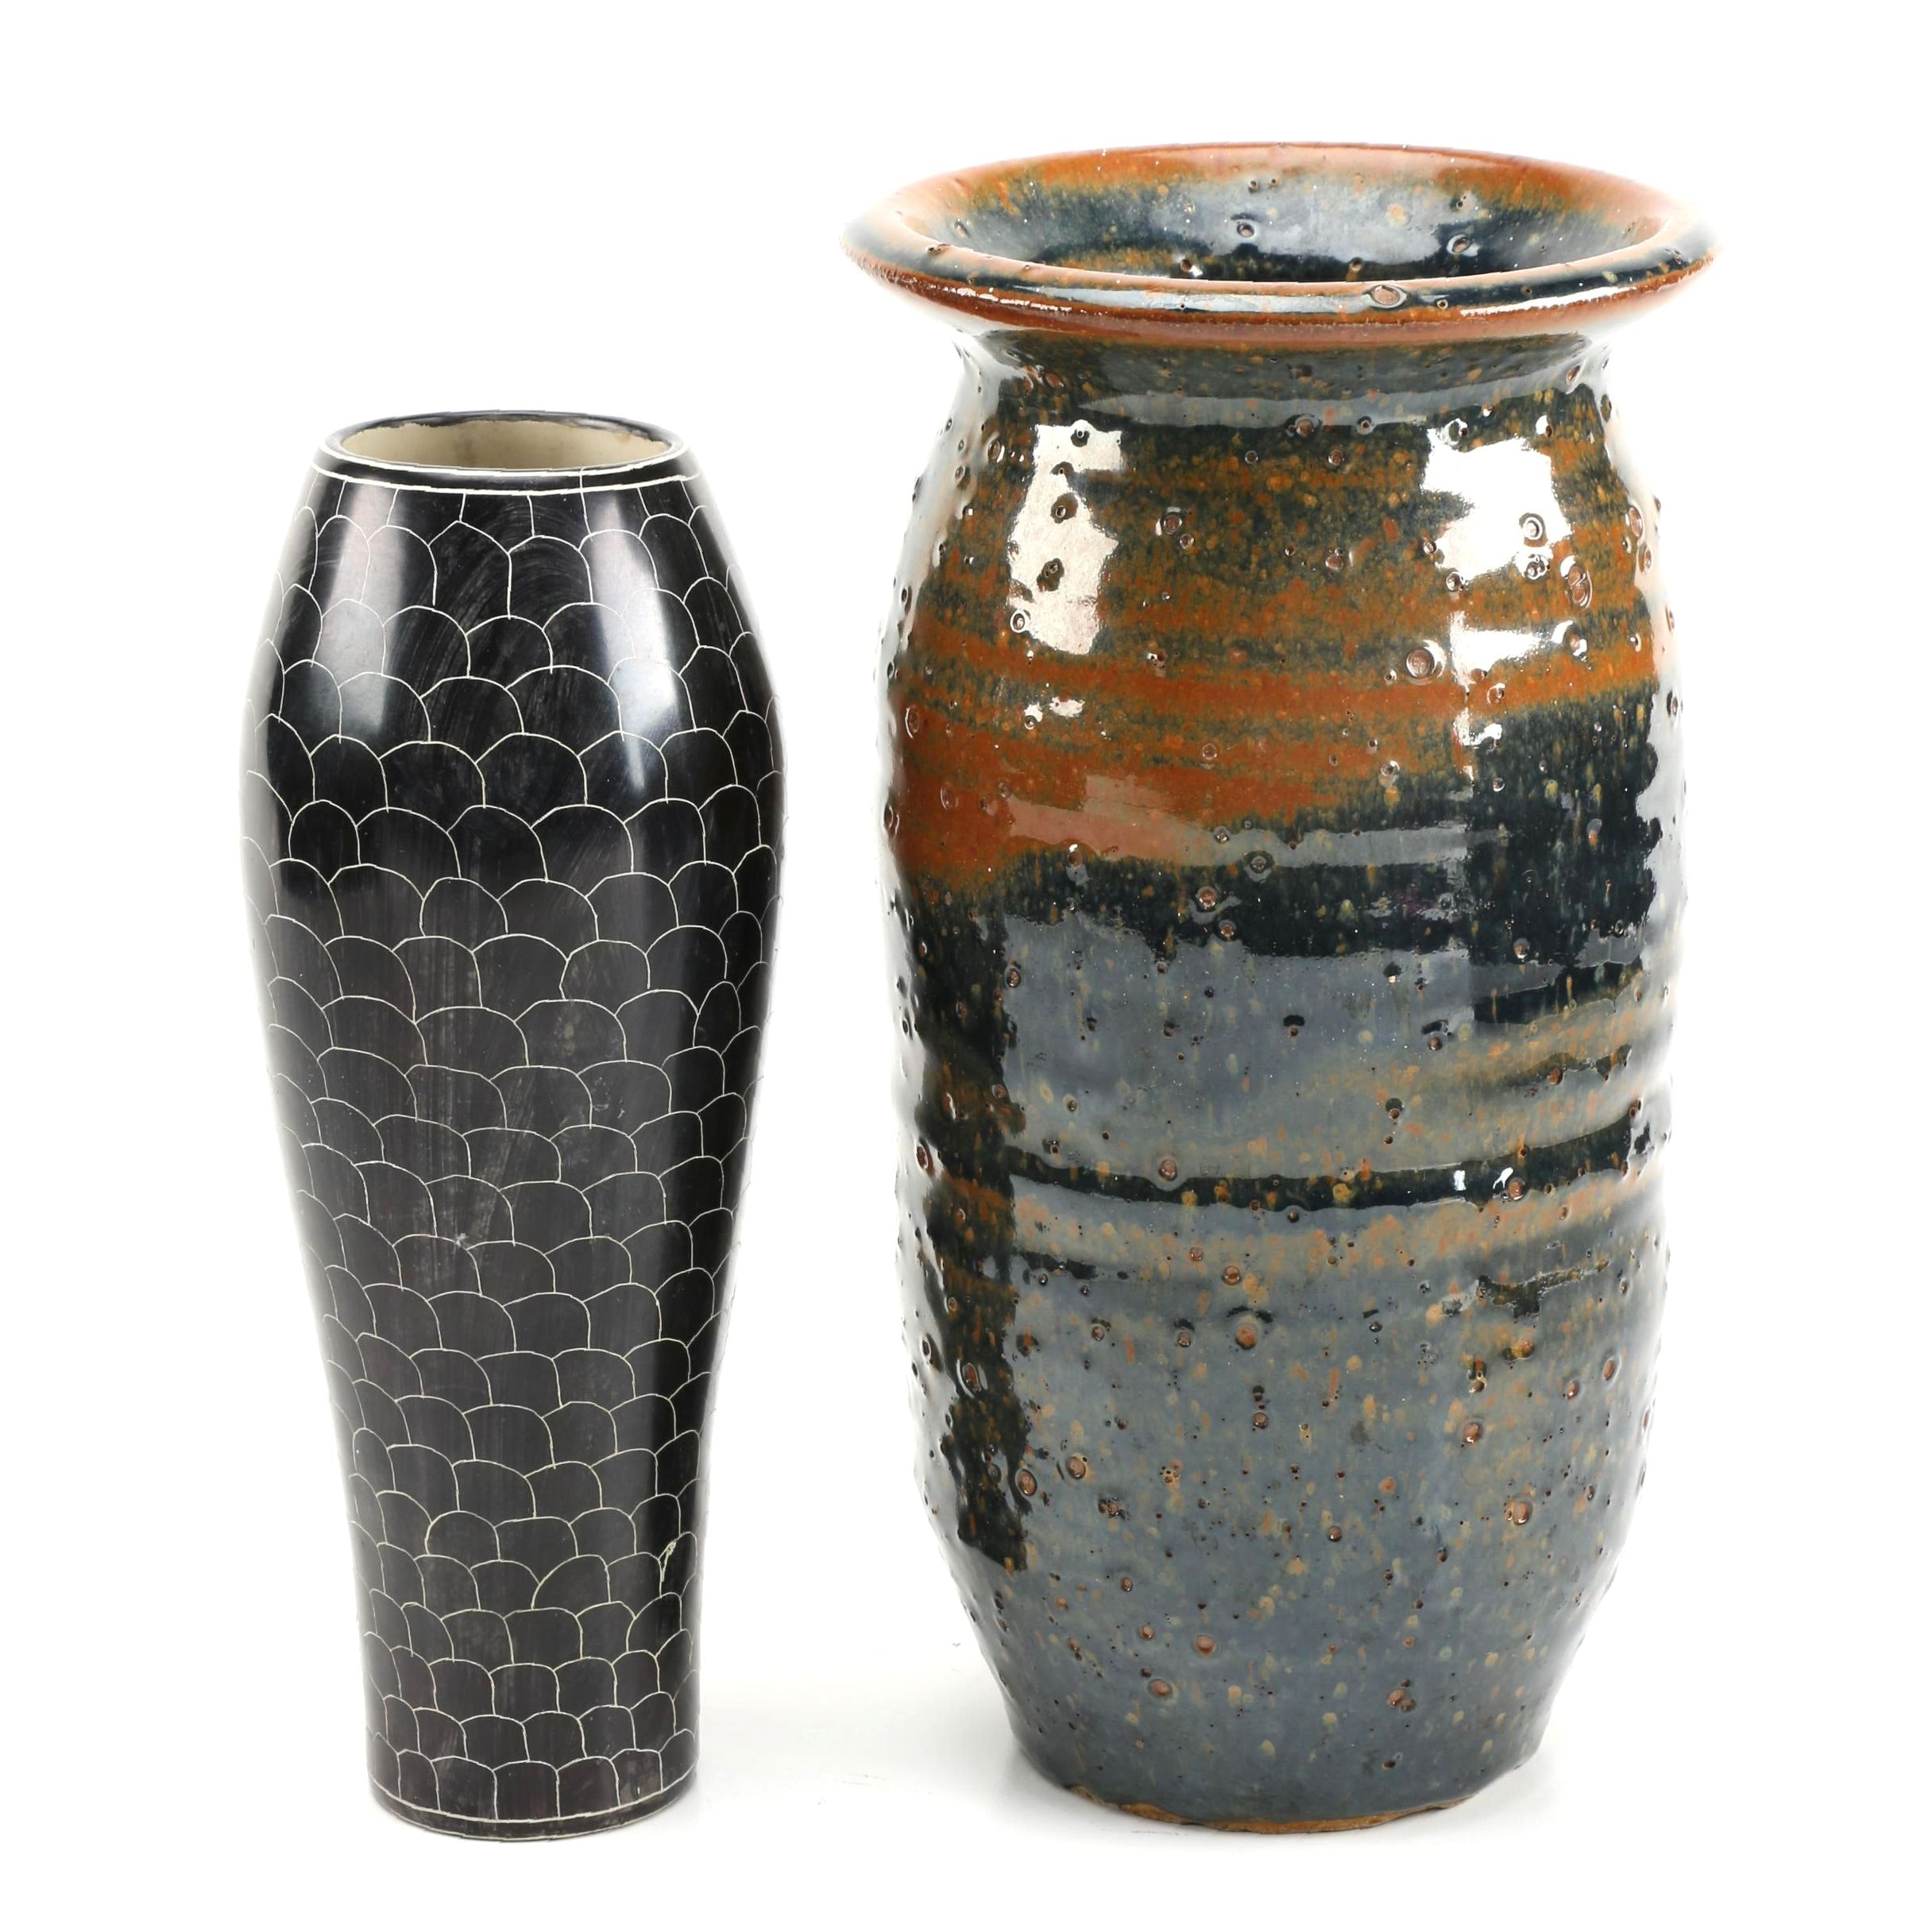 Hand Thrown and Soapstone Vase Selection